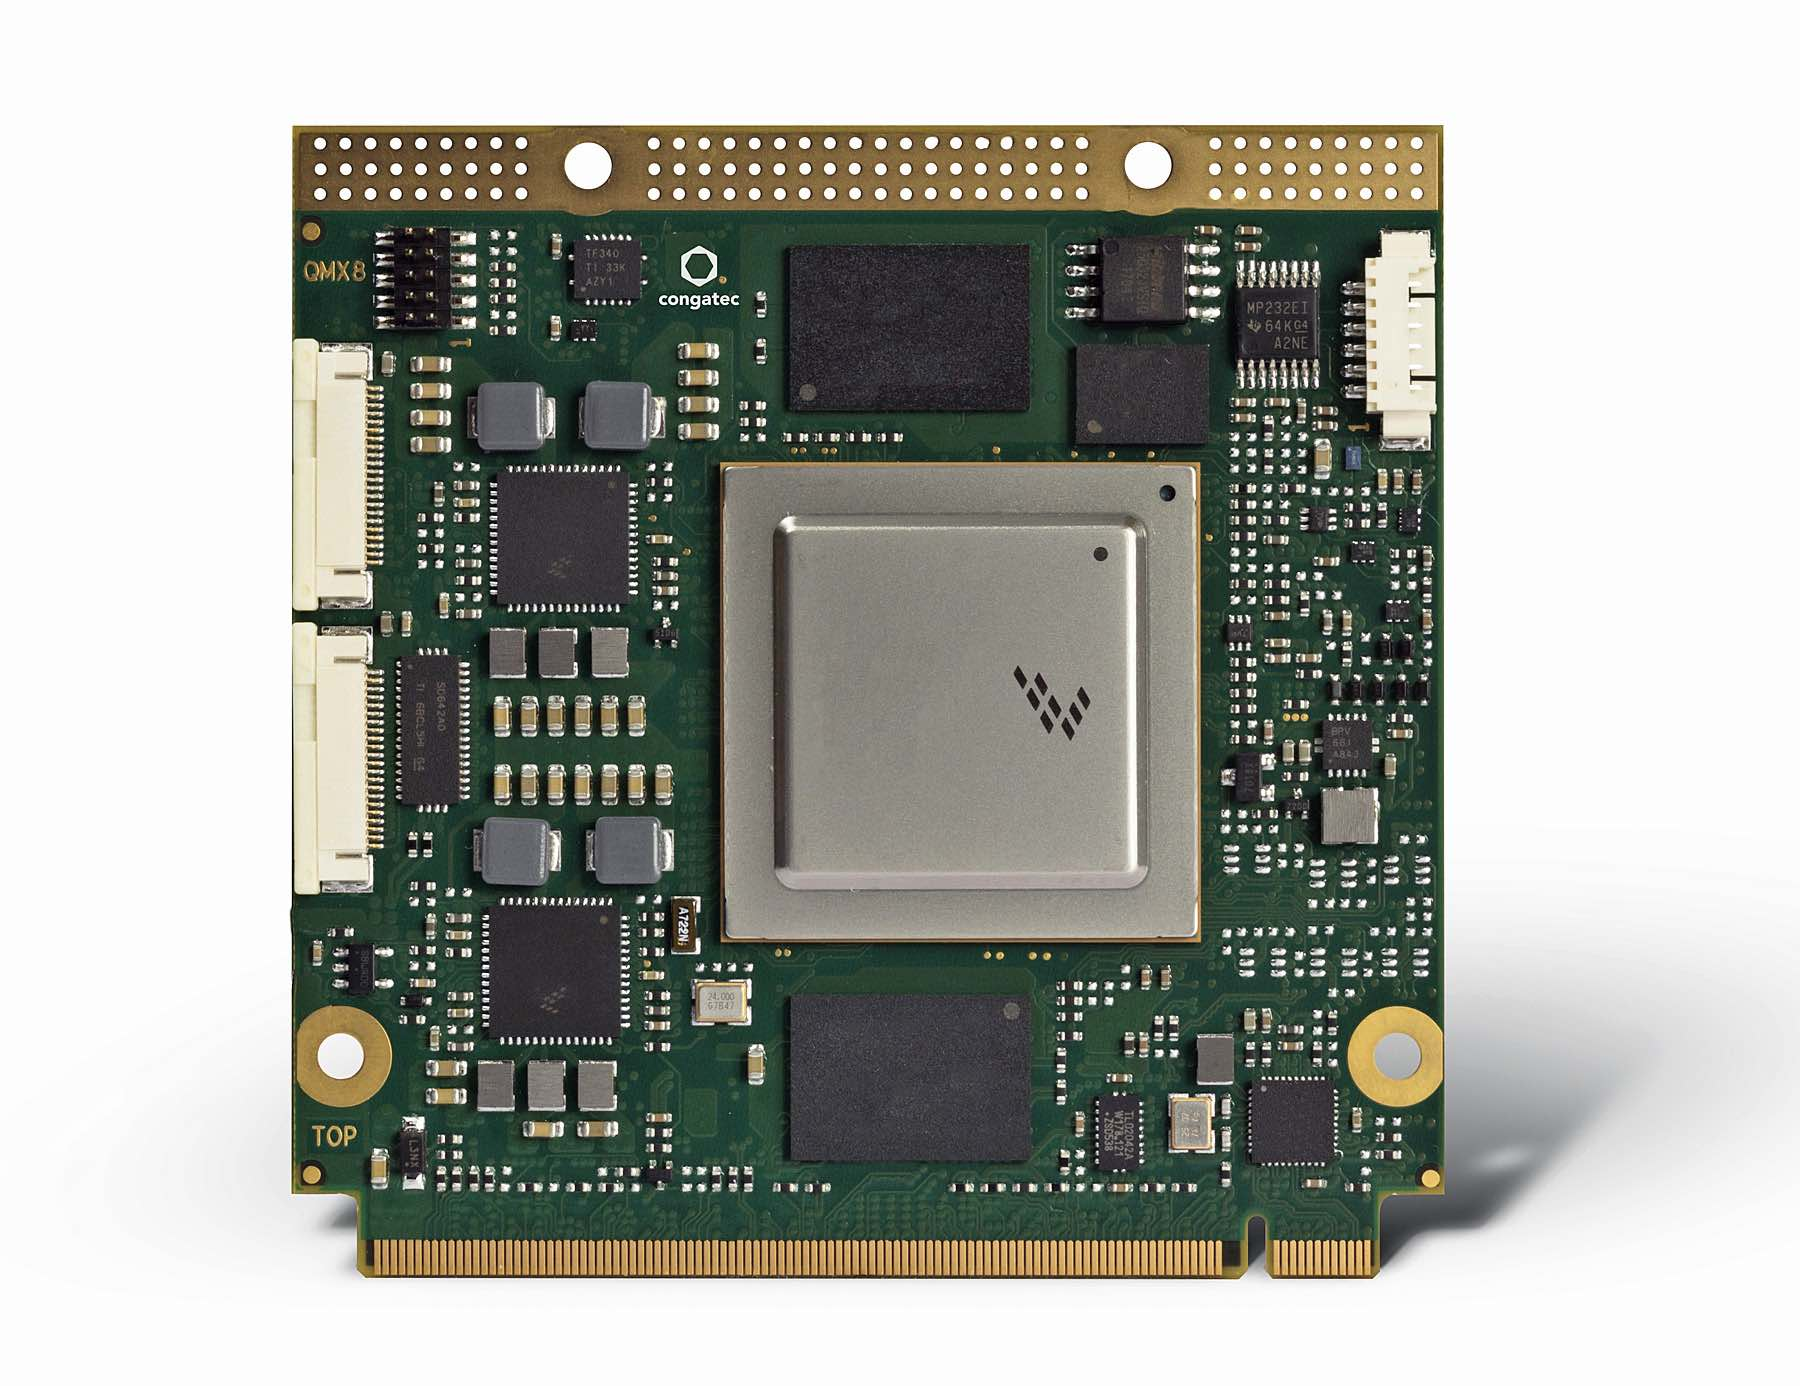 Embedded Software Engineer >> Computer modules fast-track ARM Cortex A53/A72 processors